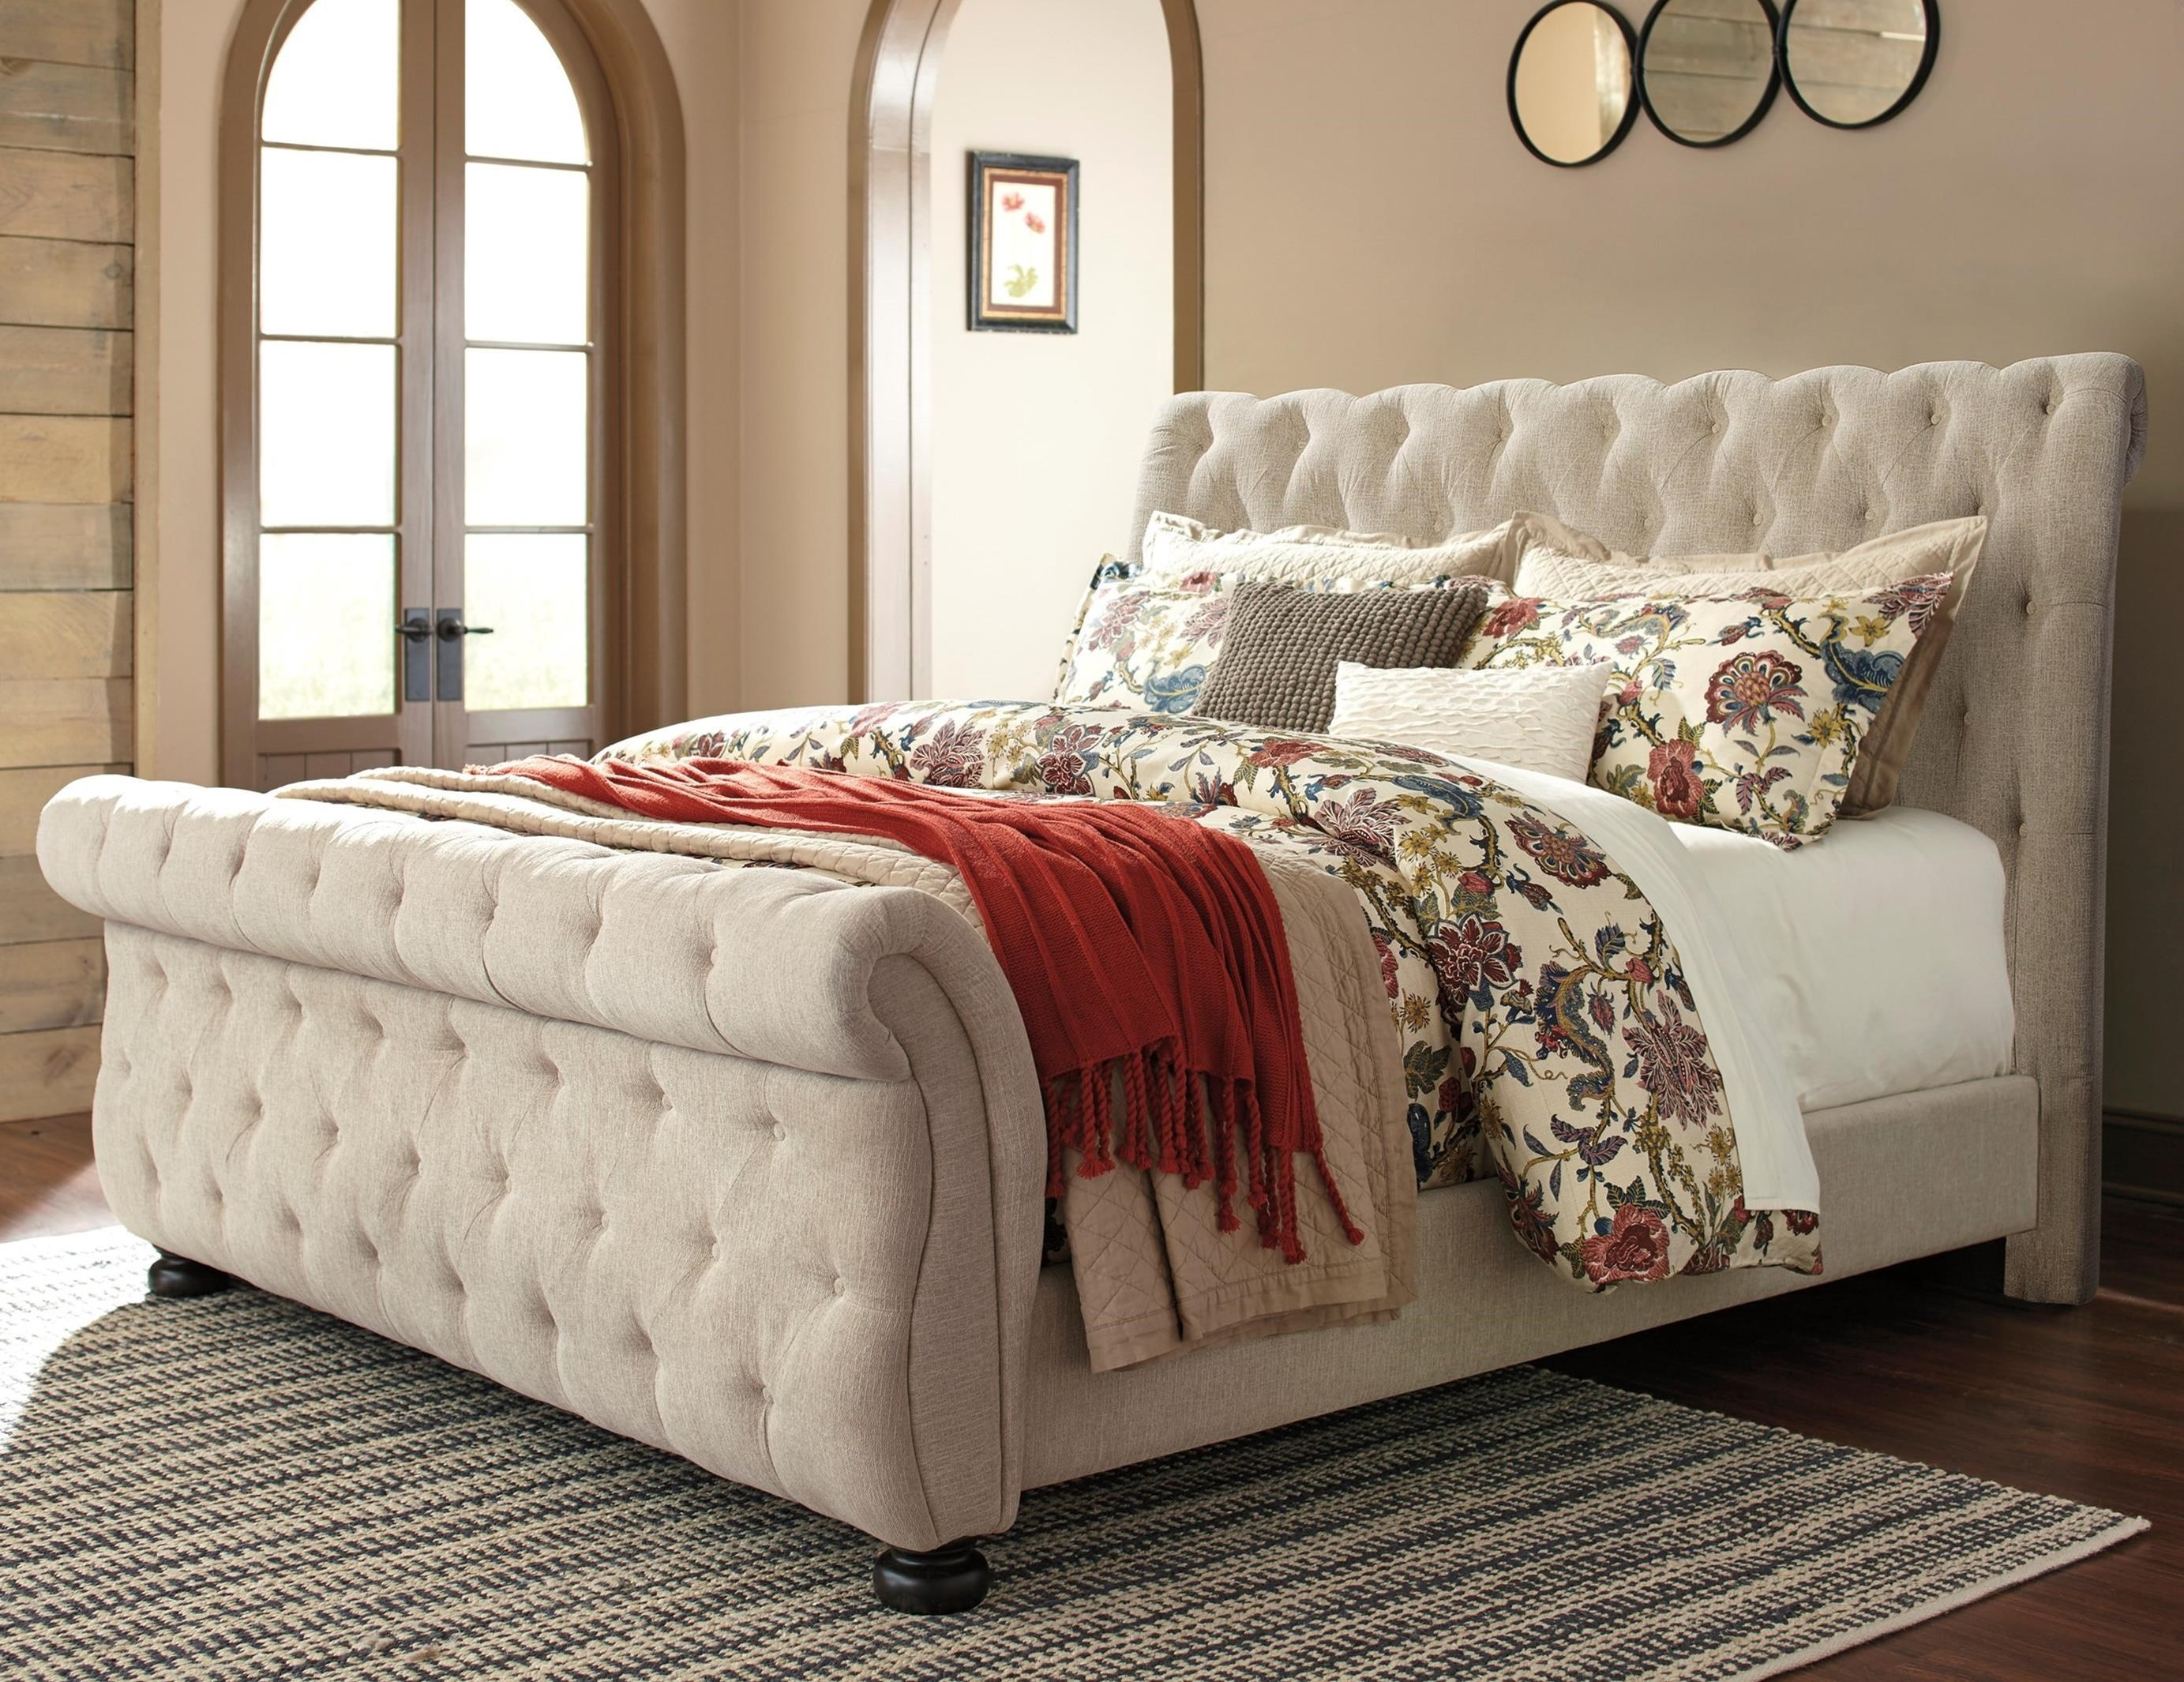 Picture of: Signature Design By Ashley Willenburg King Upholstered Sleigh Bed With Tufting Royal Furniture Upholstered Beds